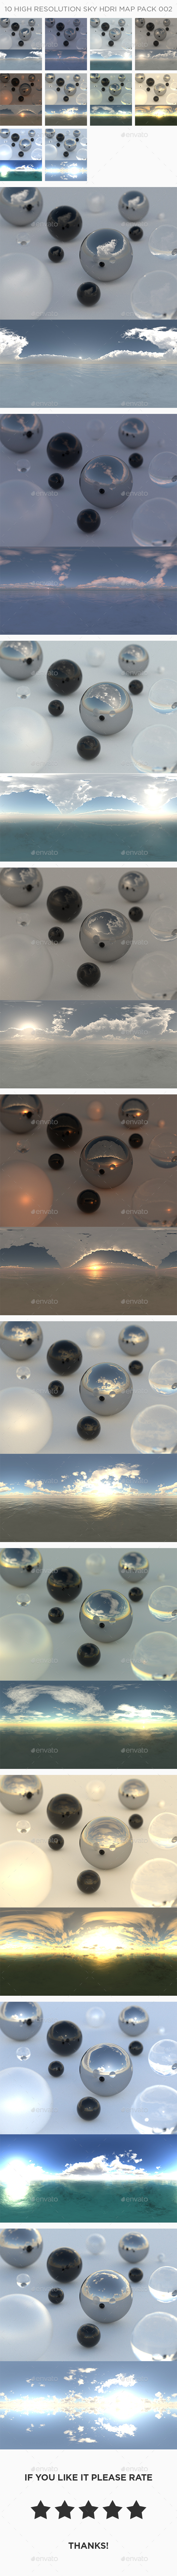 10 High Resolution Sky HDRi Maps Pack 002 - 3DOcean Item for Sale